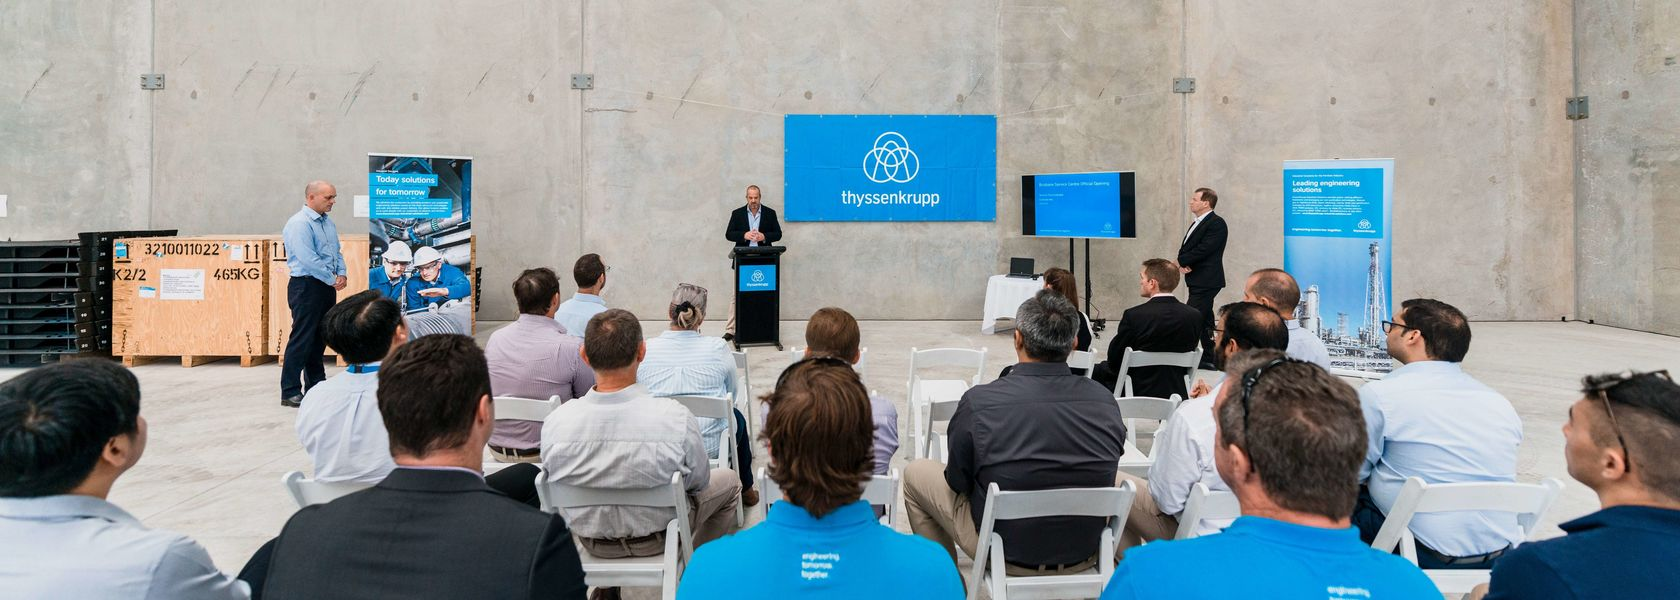 Brisbane becomes newest thyssenkrupp home